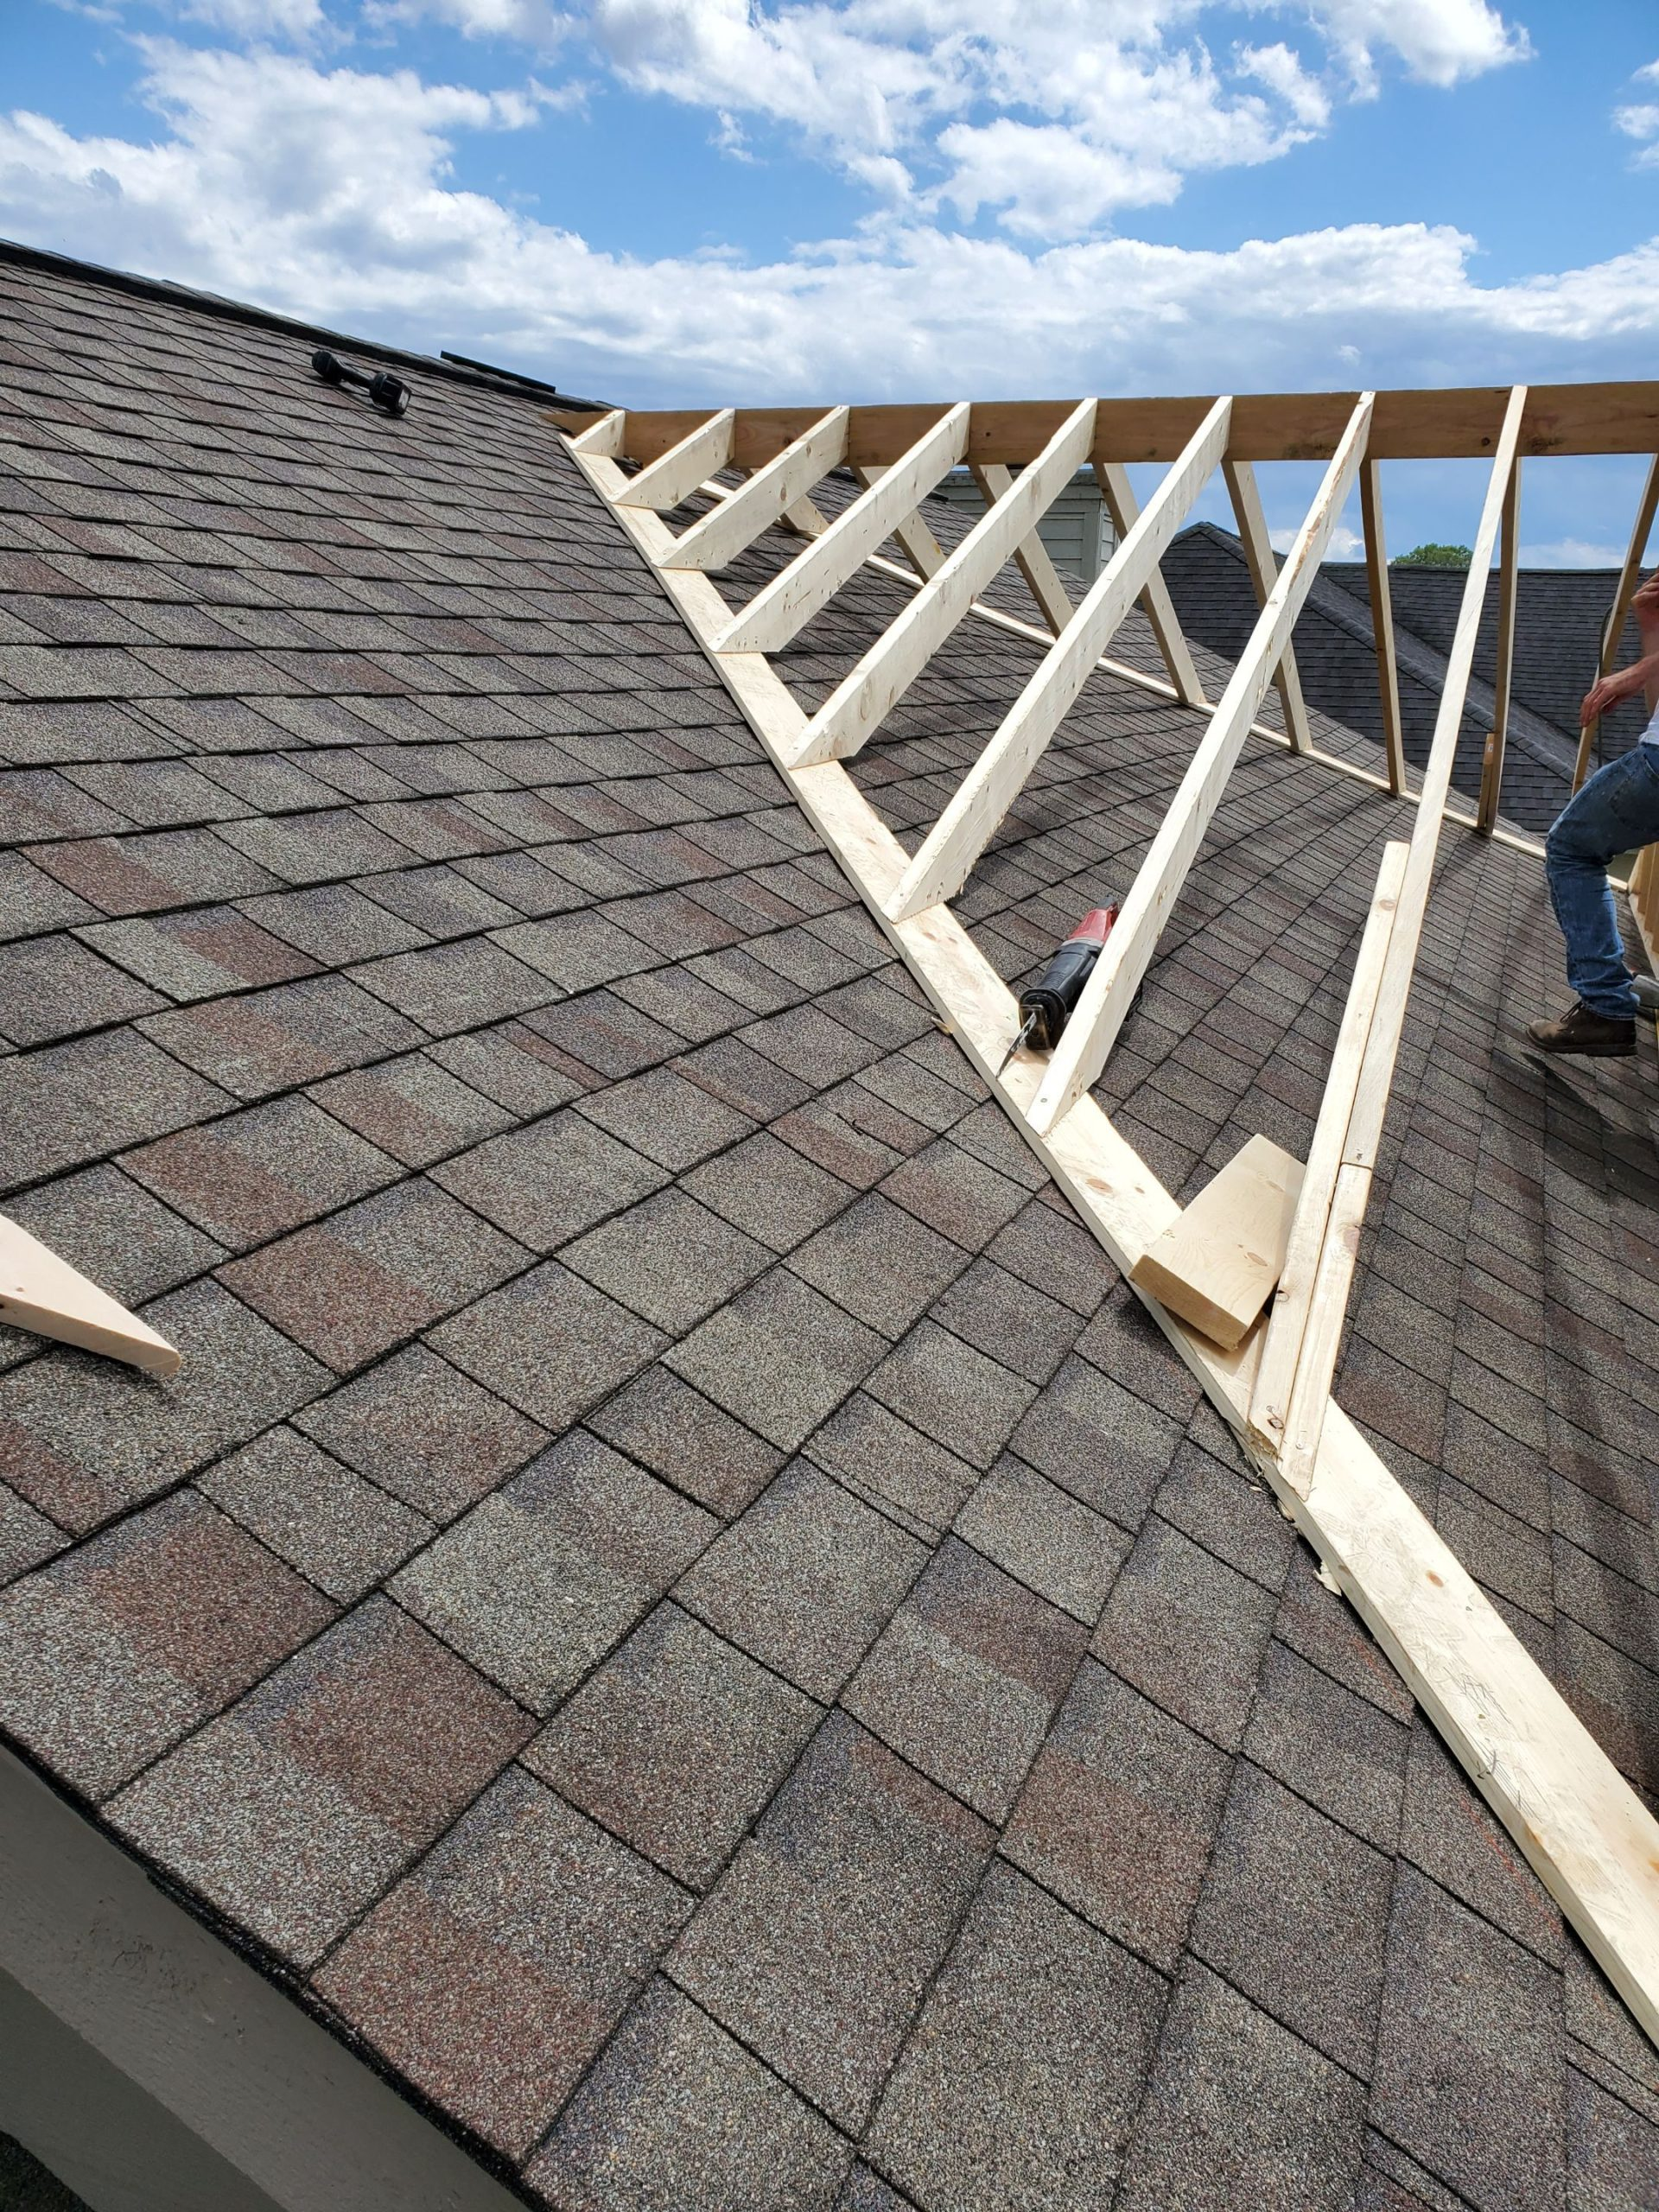 Clarkston Dormer Roofing Company Build